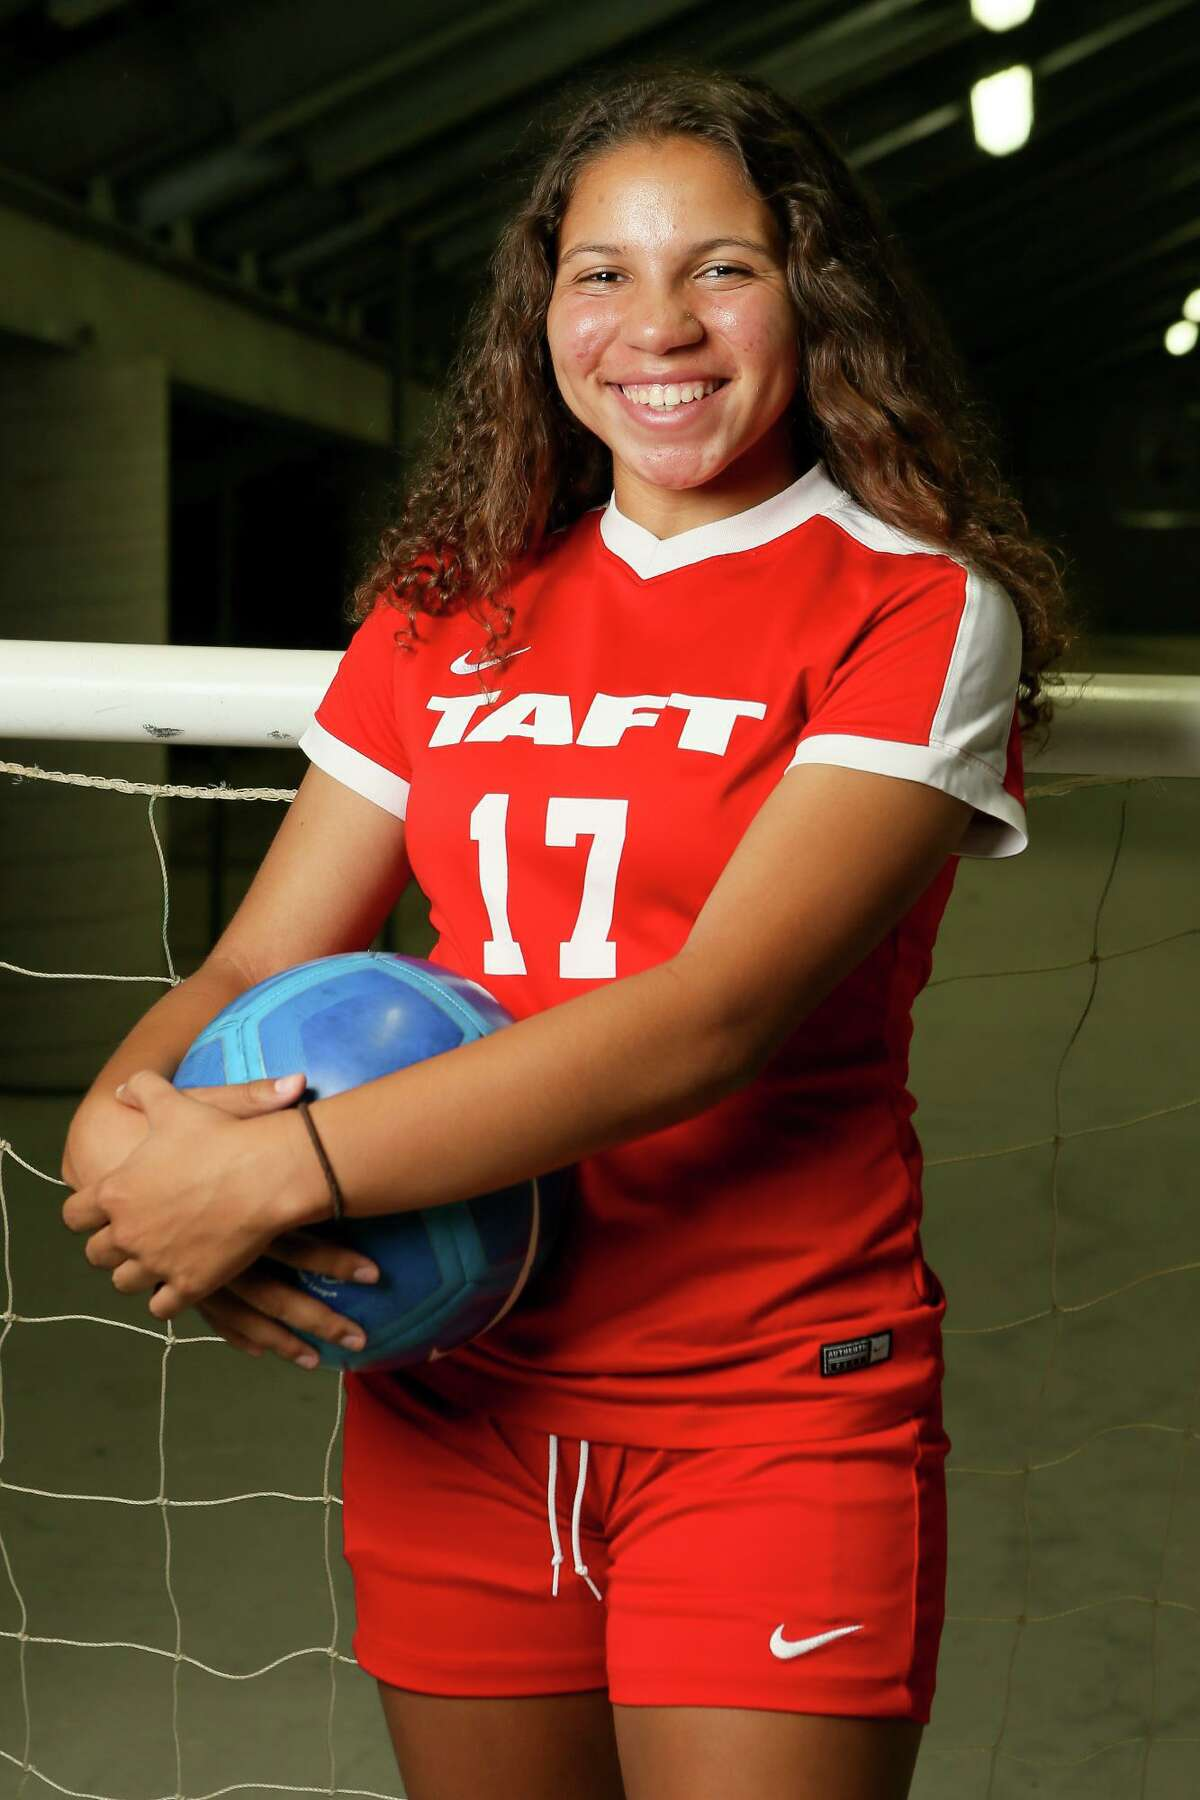 Adriana Hutson, Taft forward, posing at Toyota Field on Wednesday, May 2, 2018, is a member of the 2018 Express-News All-Area Girls Soccer Team. MARVIN PFEIFFER/mpfeiffer@express-news.net